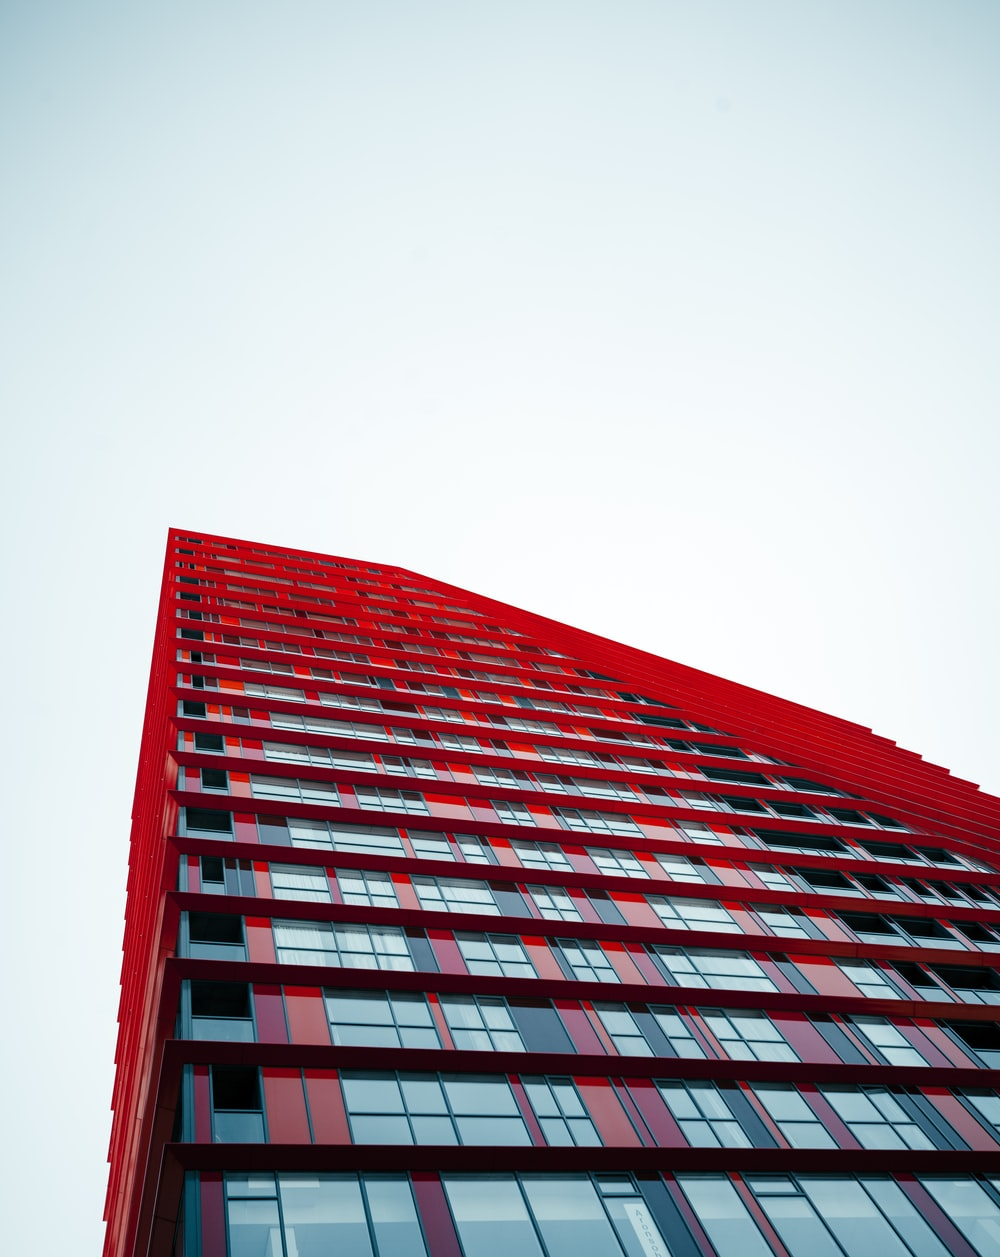 red and black high rise building